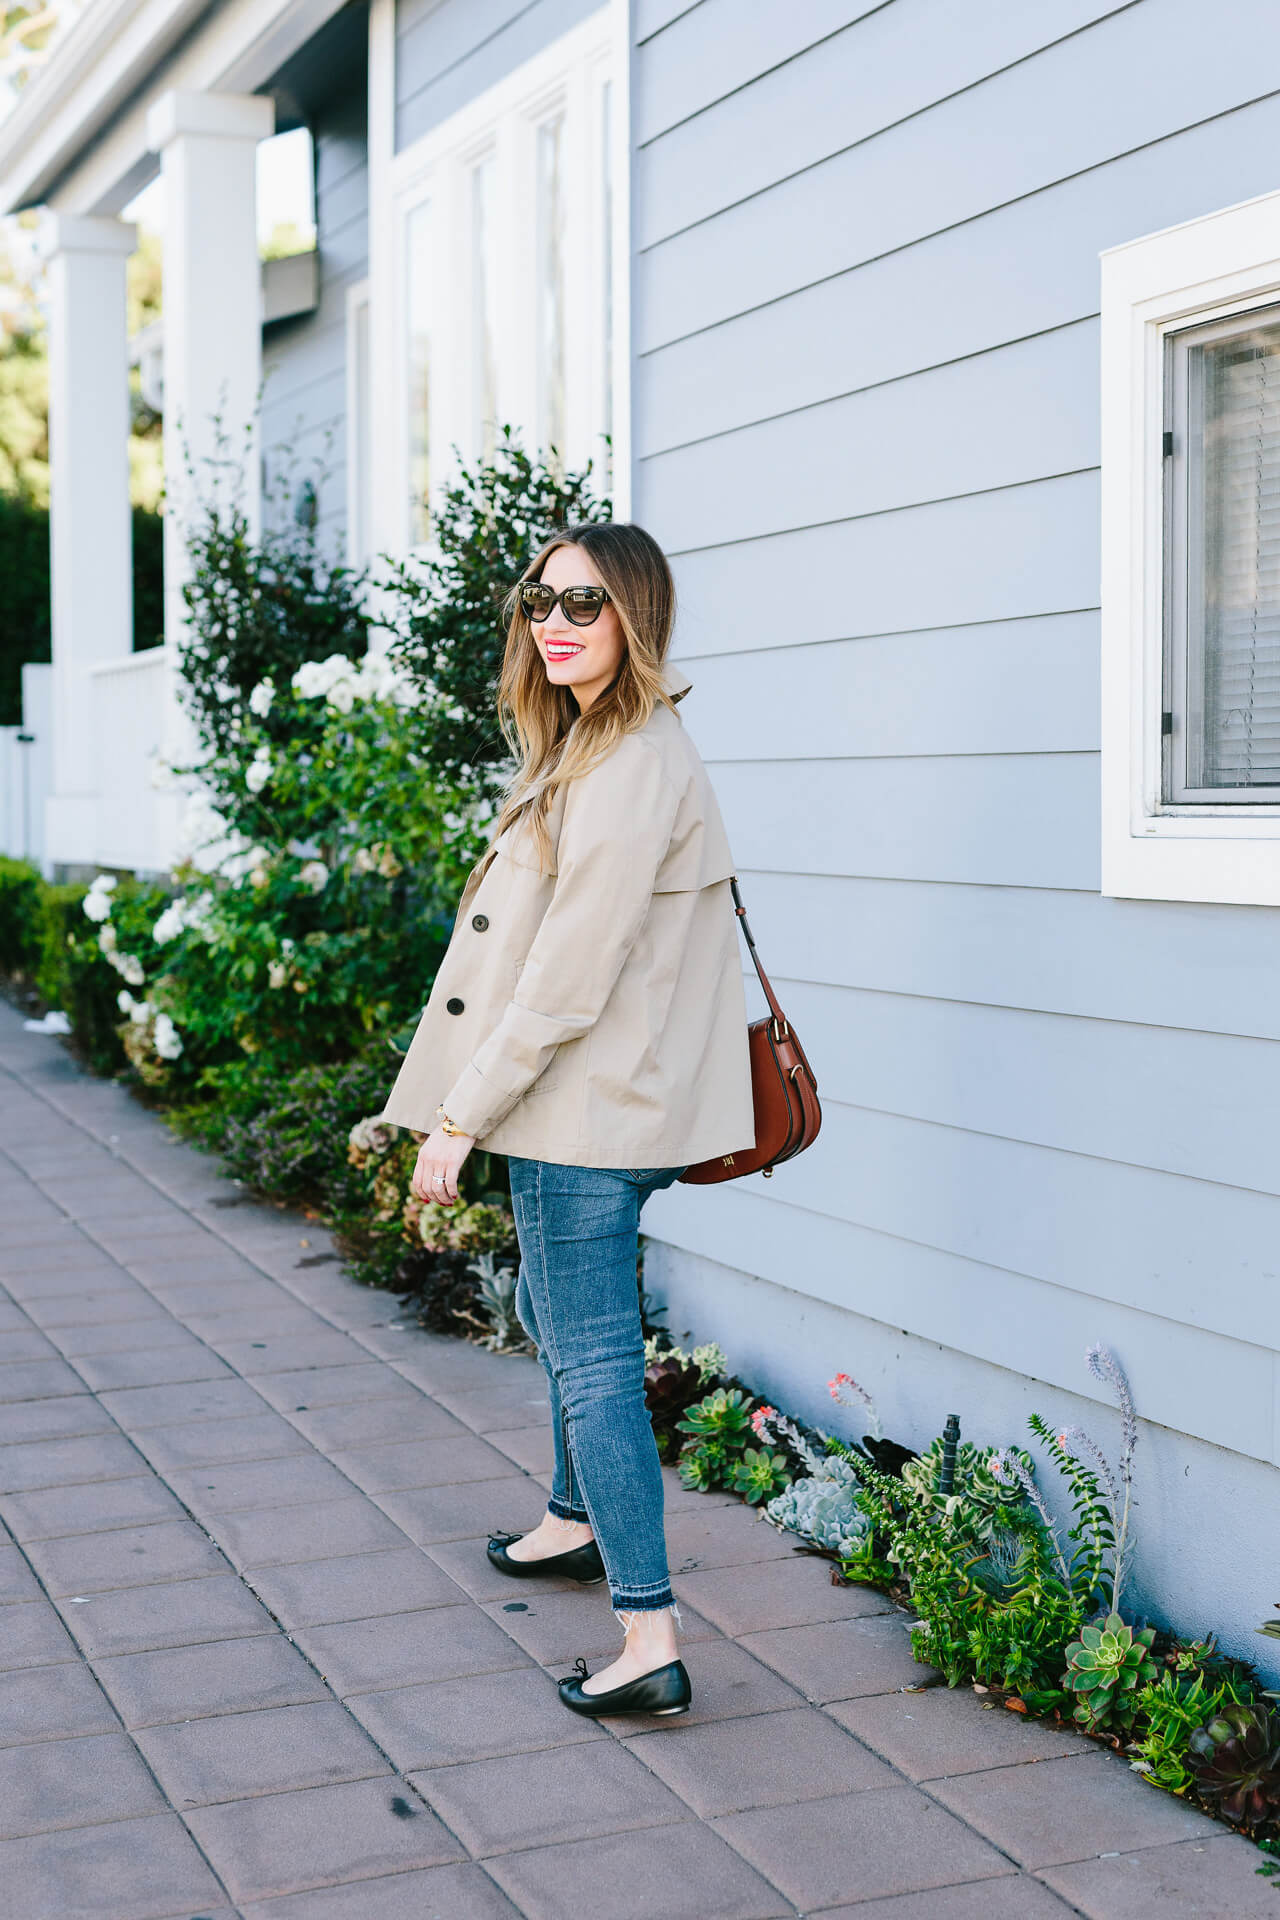 pair an everyone short trench coat with jeans for a modern twist on a timeless classic